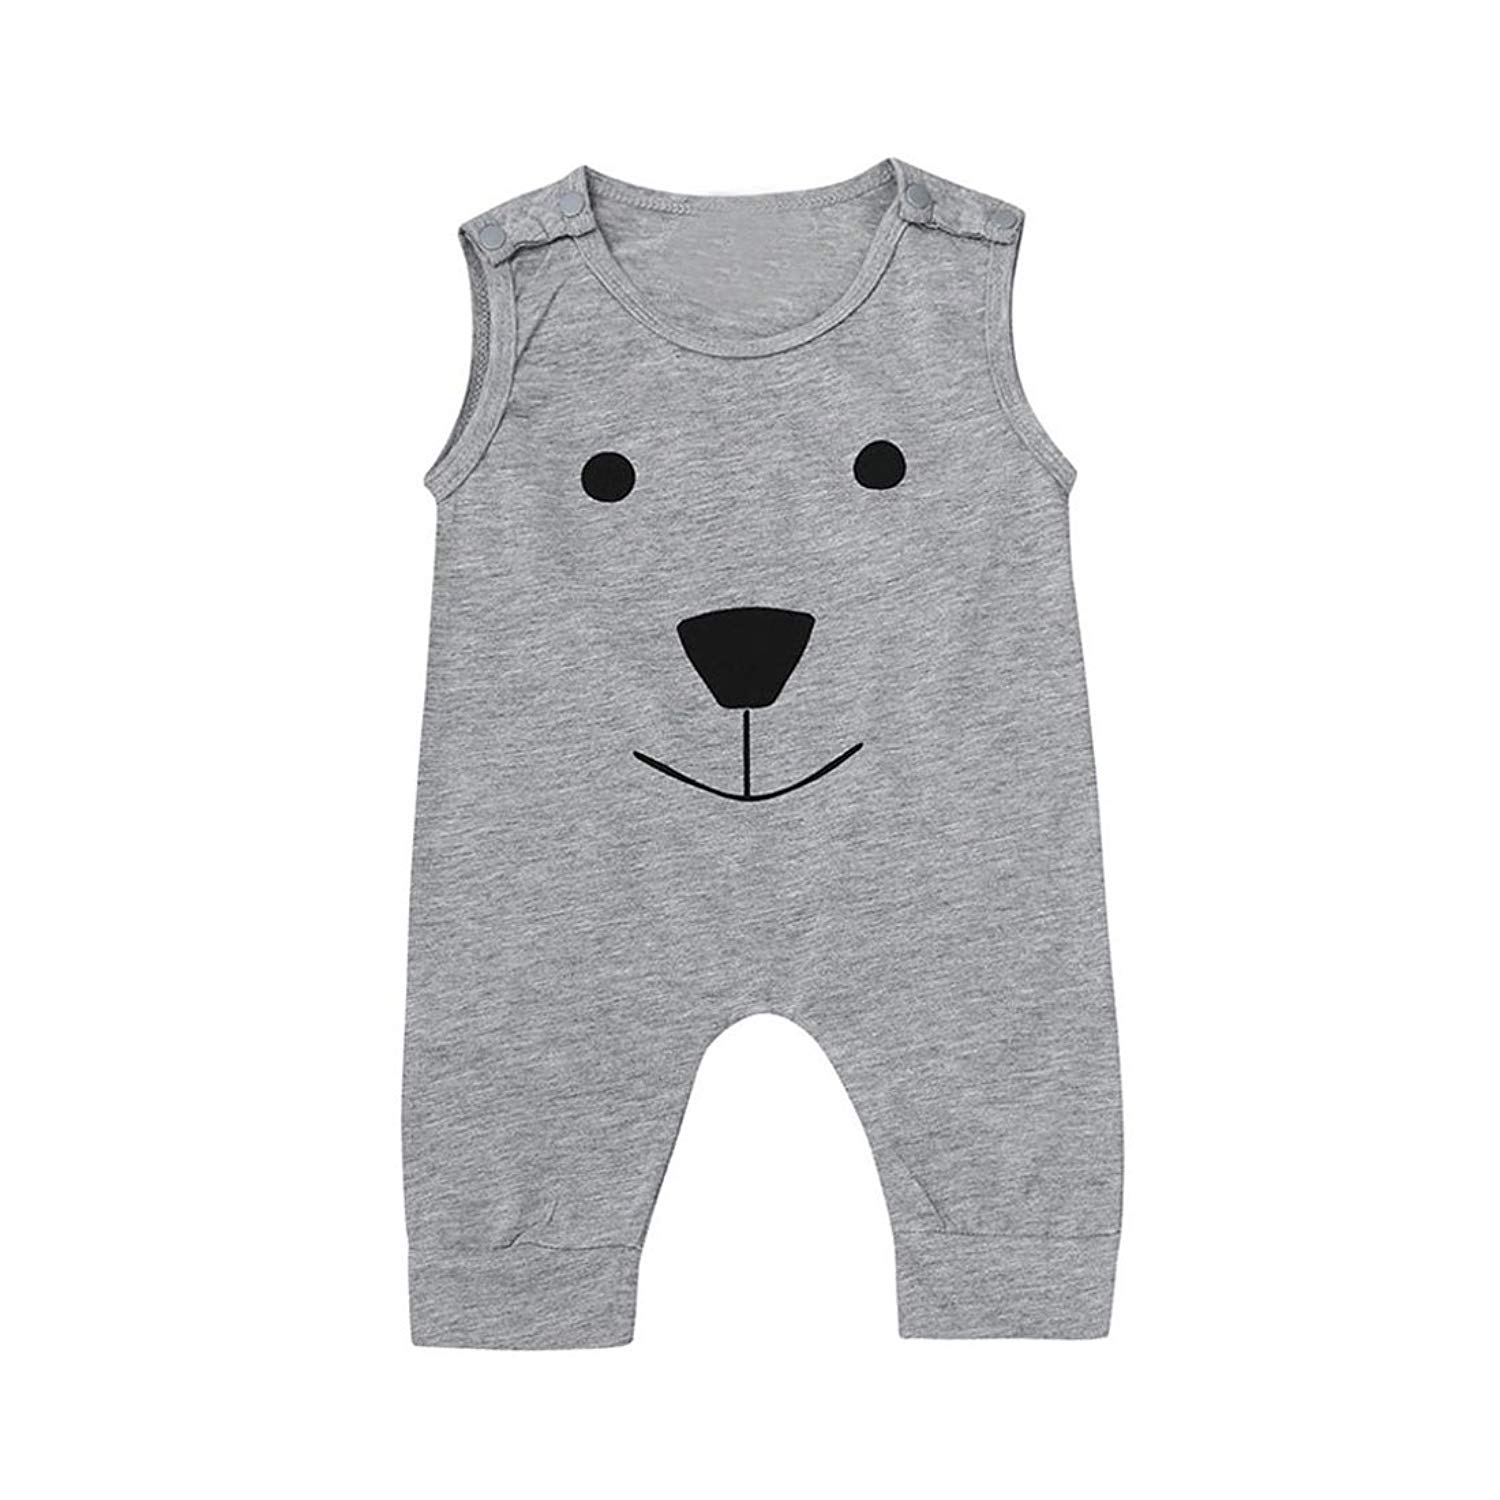 Molyveva Infant Baby Boy Girl Sleeveless Romper Bear Jumpsuit Summer Clothes